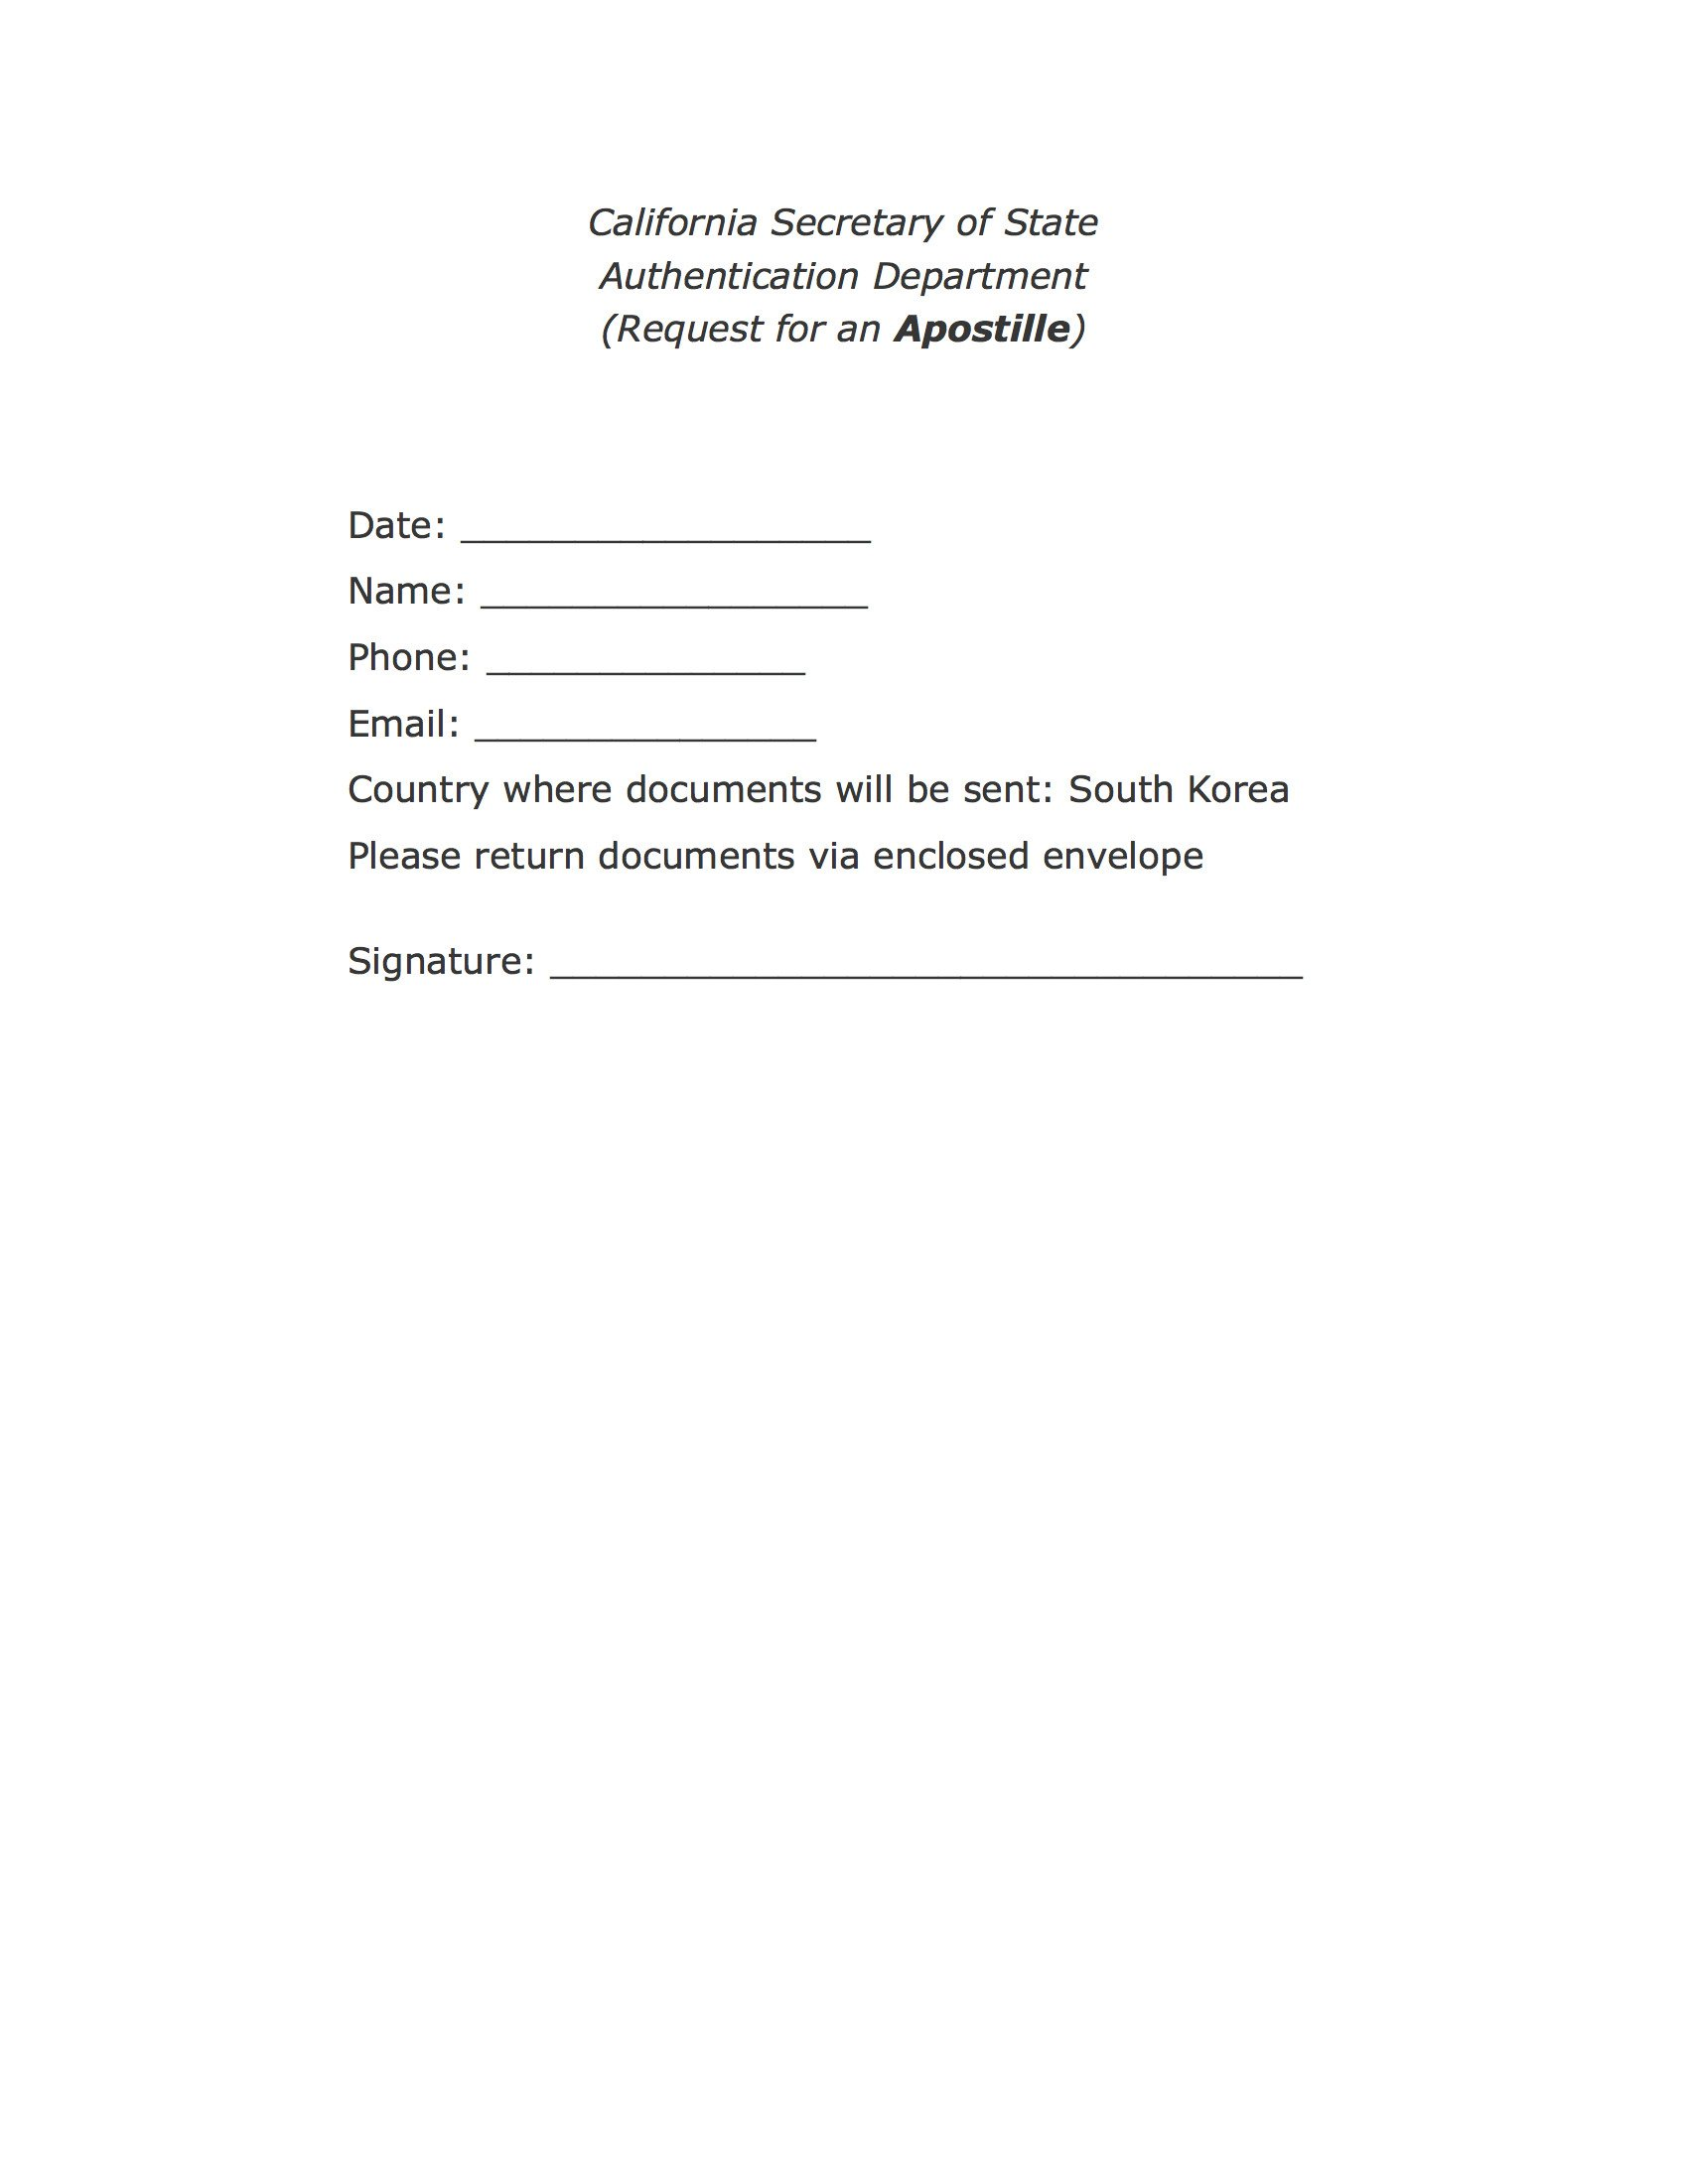 Cover Letter for Apostille Example Travelling Body & Seoul